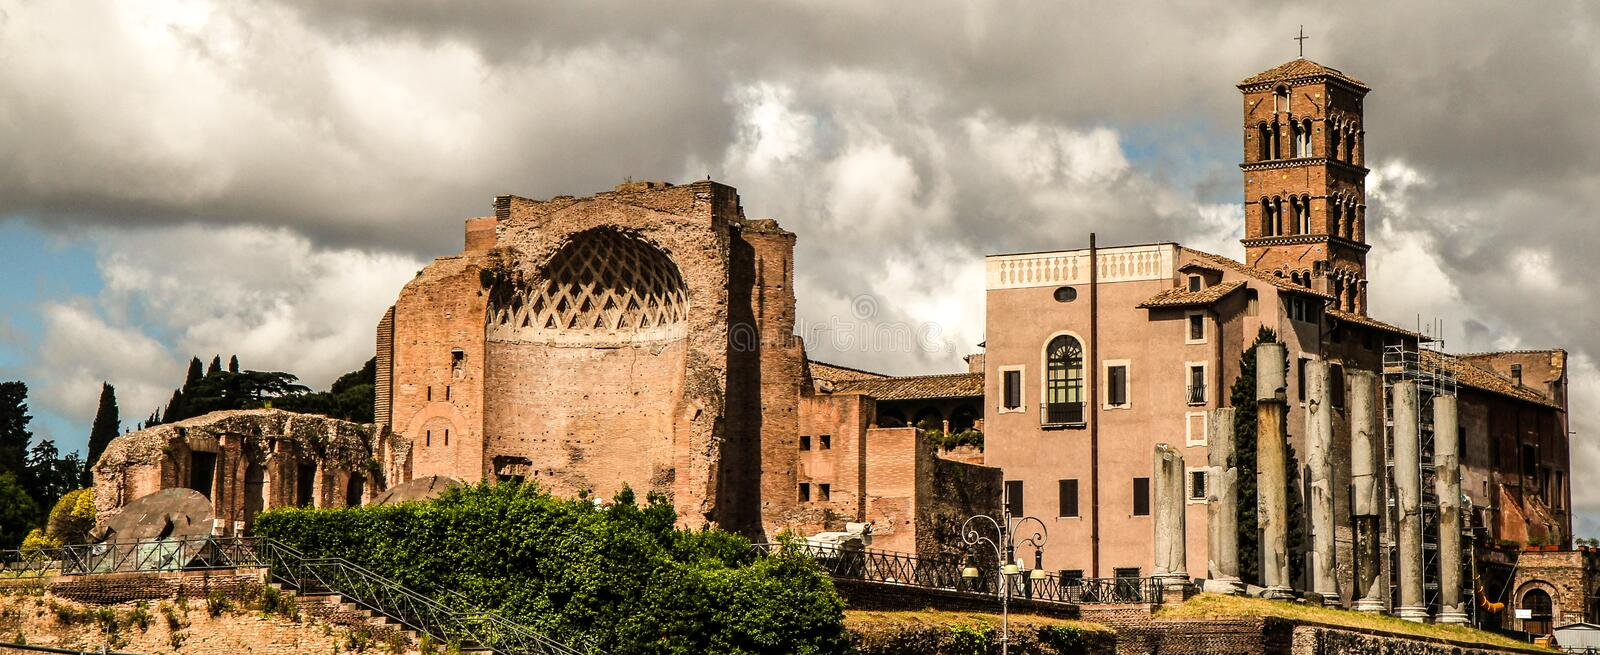 Ruins and church. Different architecture styles live in harmony in Roma stock photos